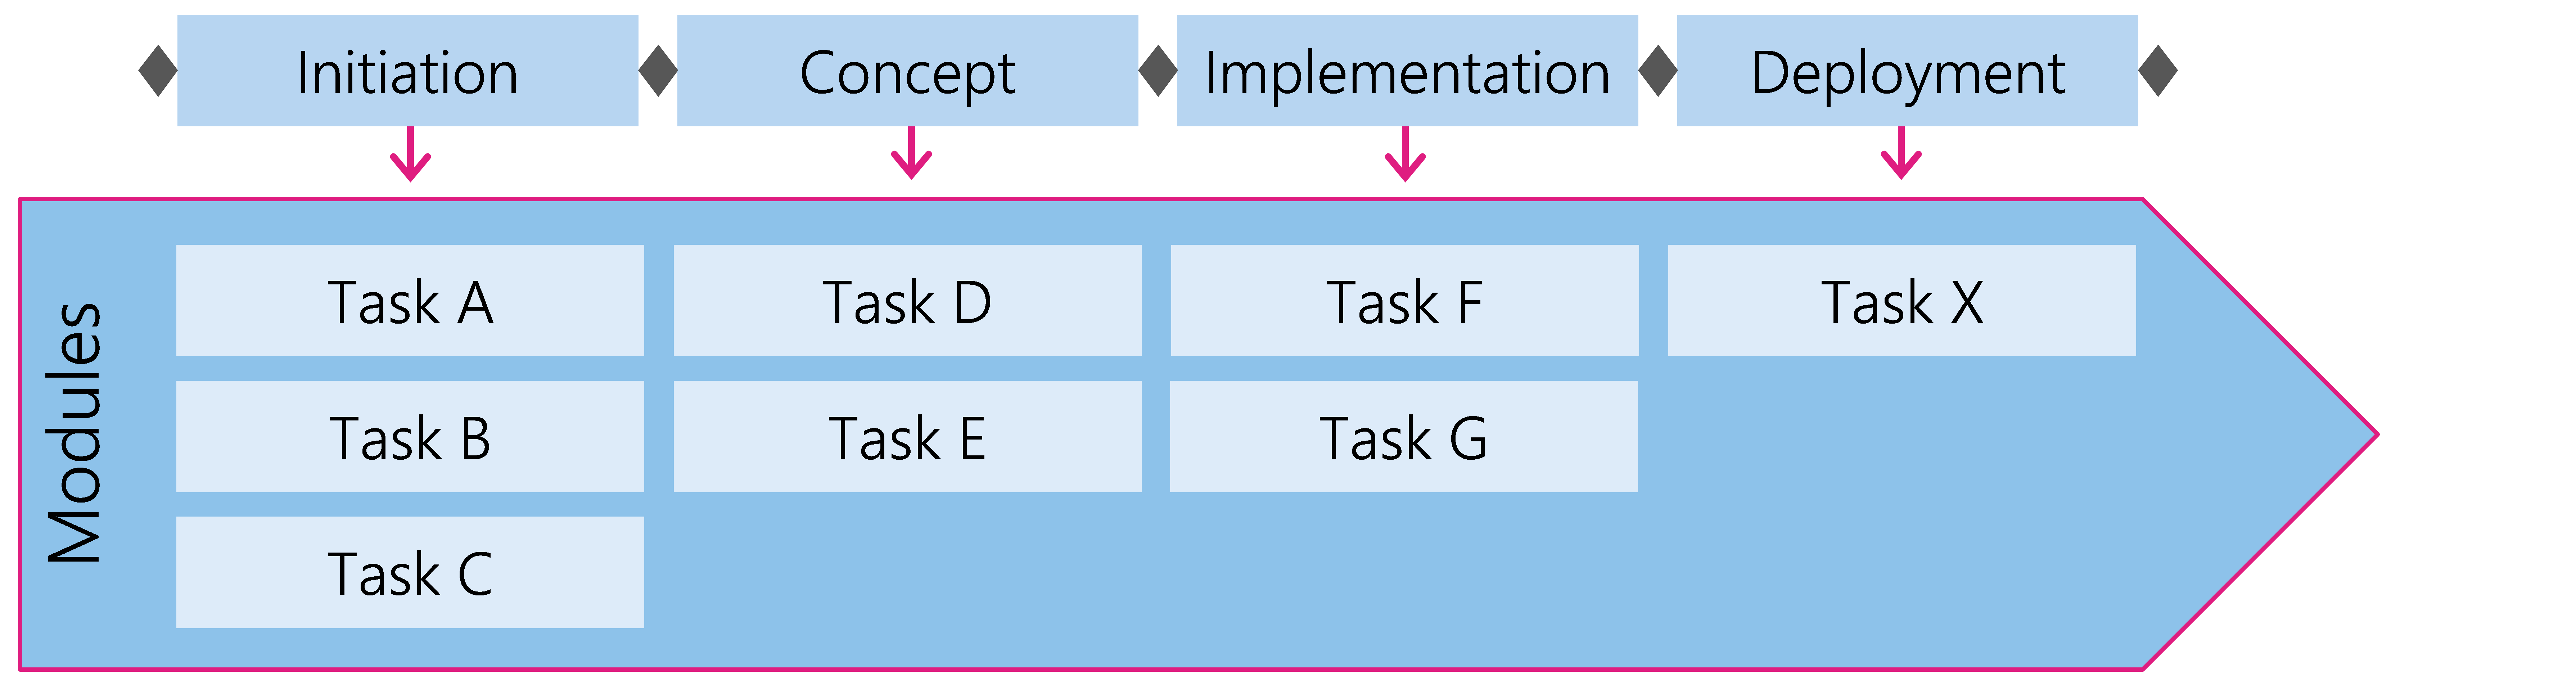 Figure 5: Tasks are grouped into modules and assigned to phases